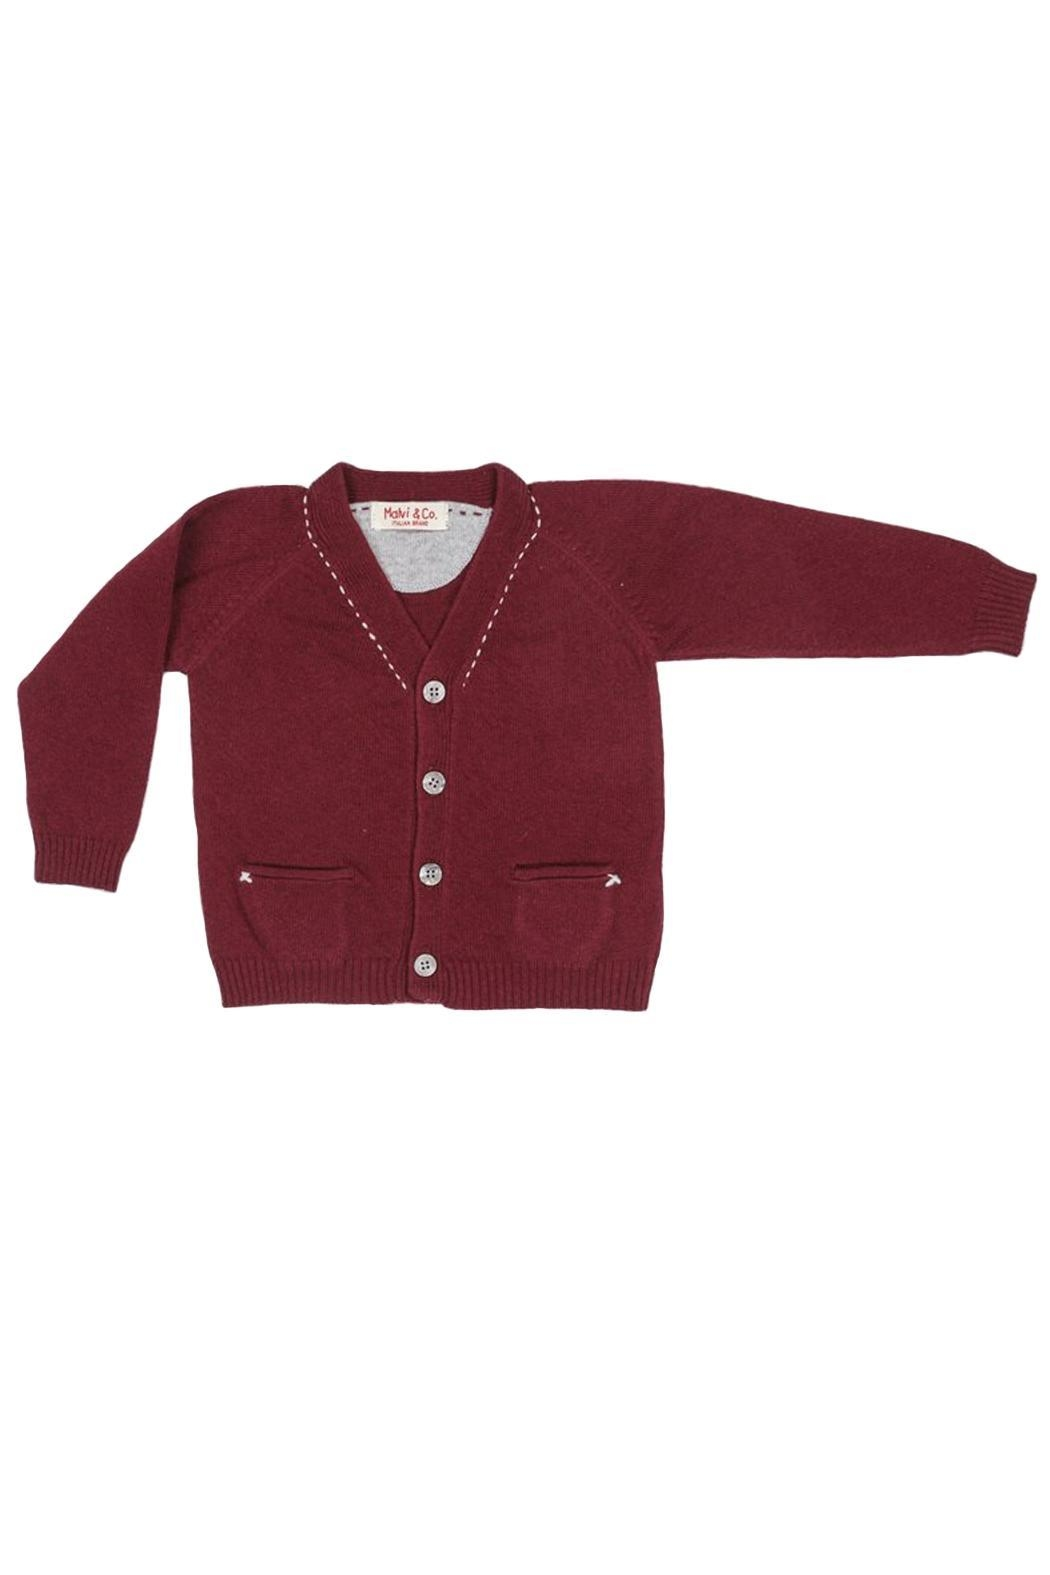 Malvi & Co. Burgundy Topstitch Cardigan. - Main Image